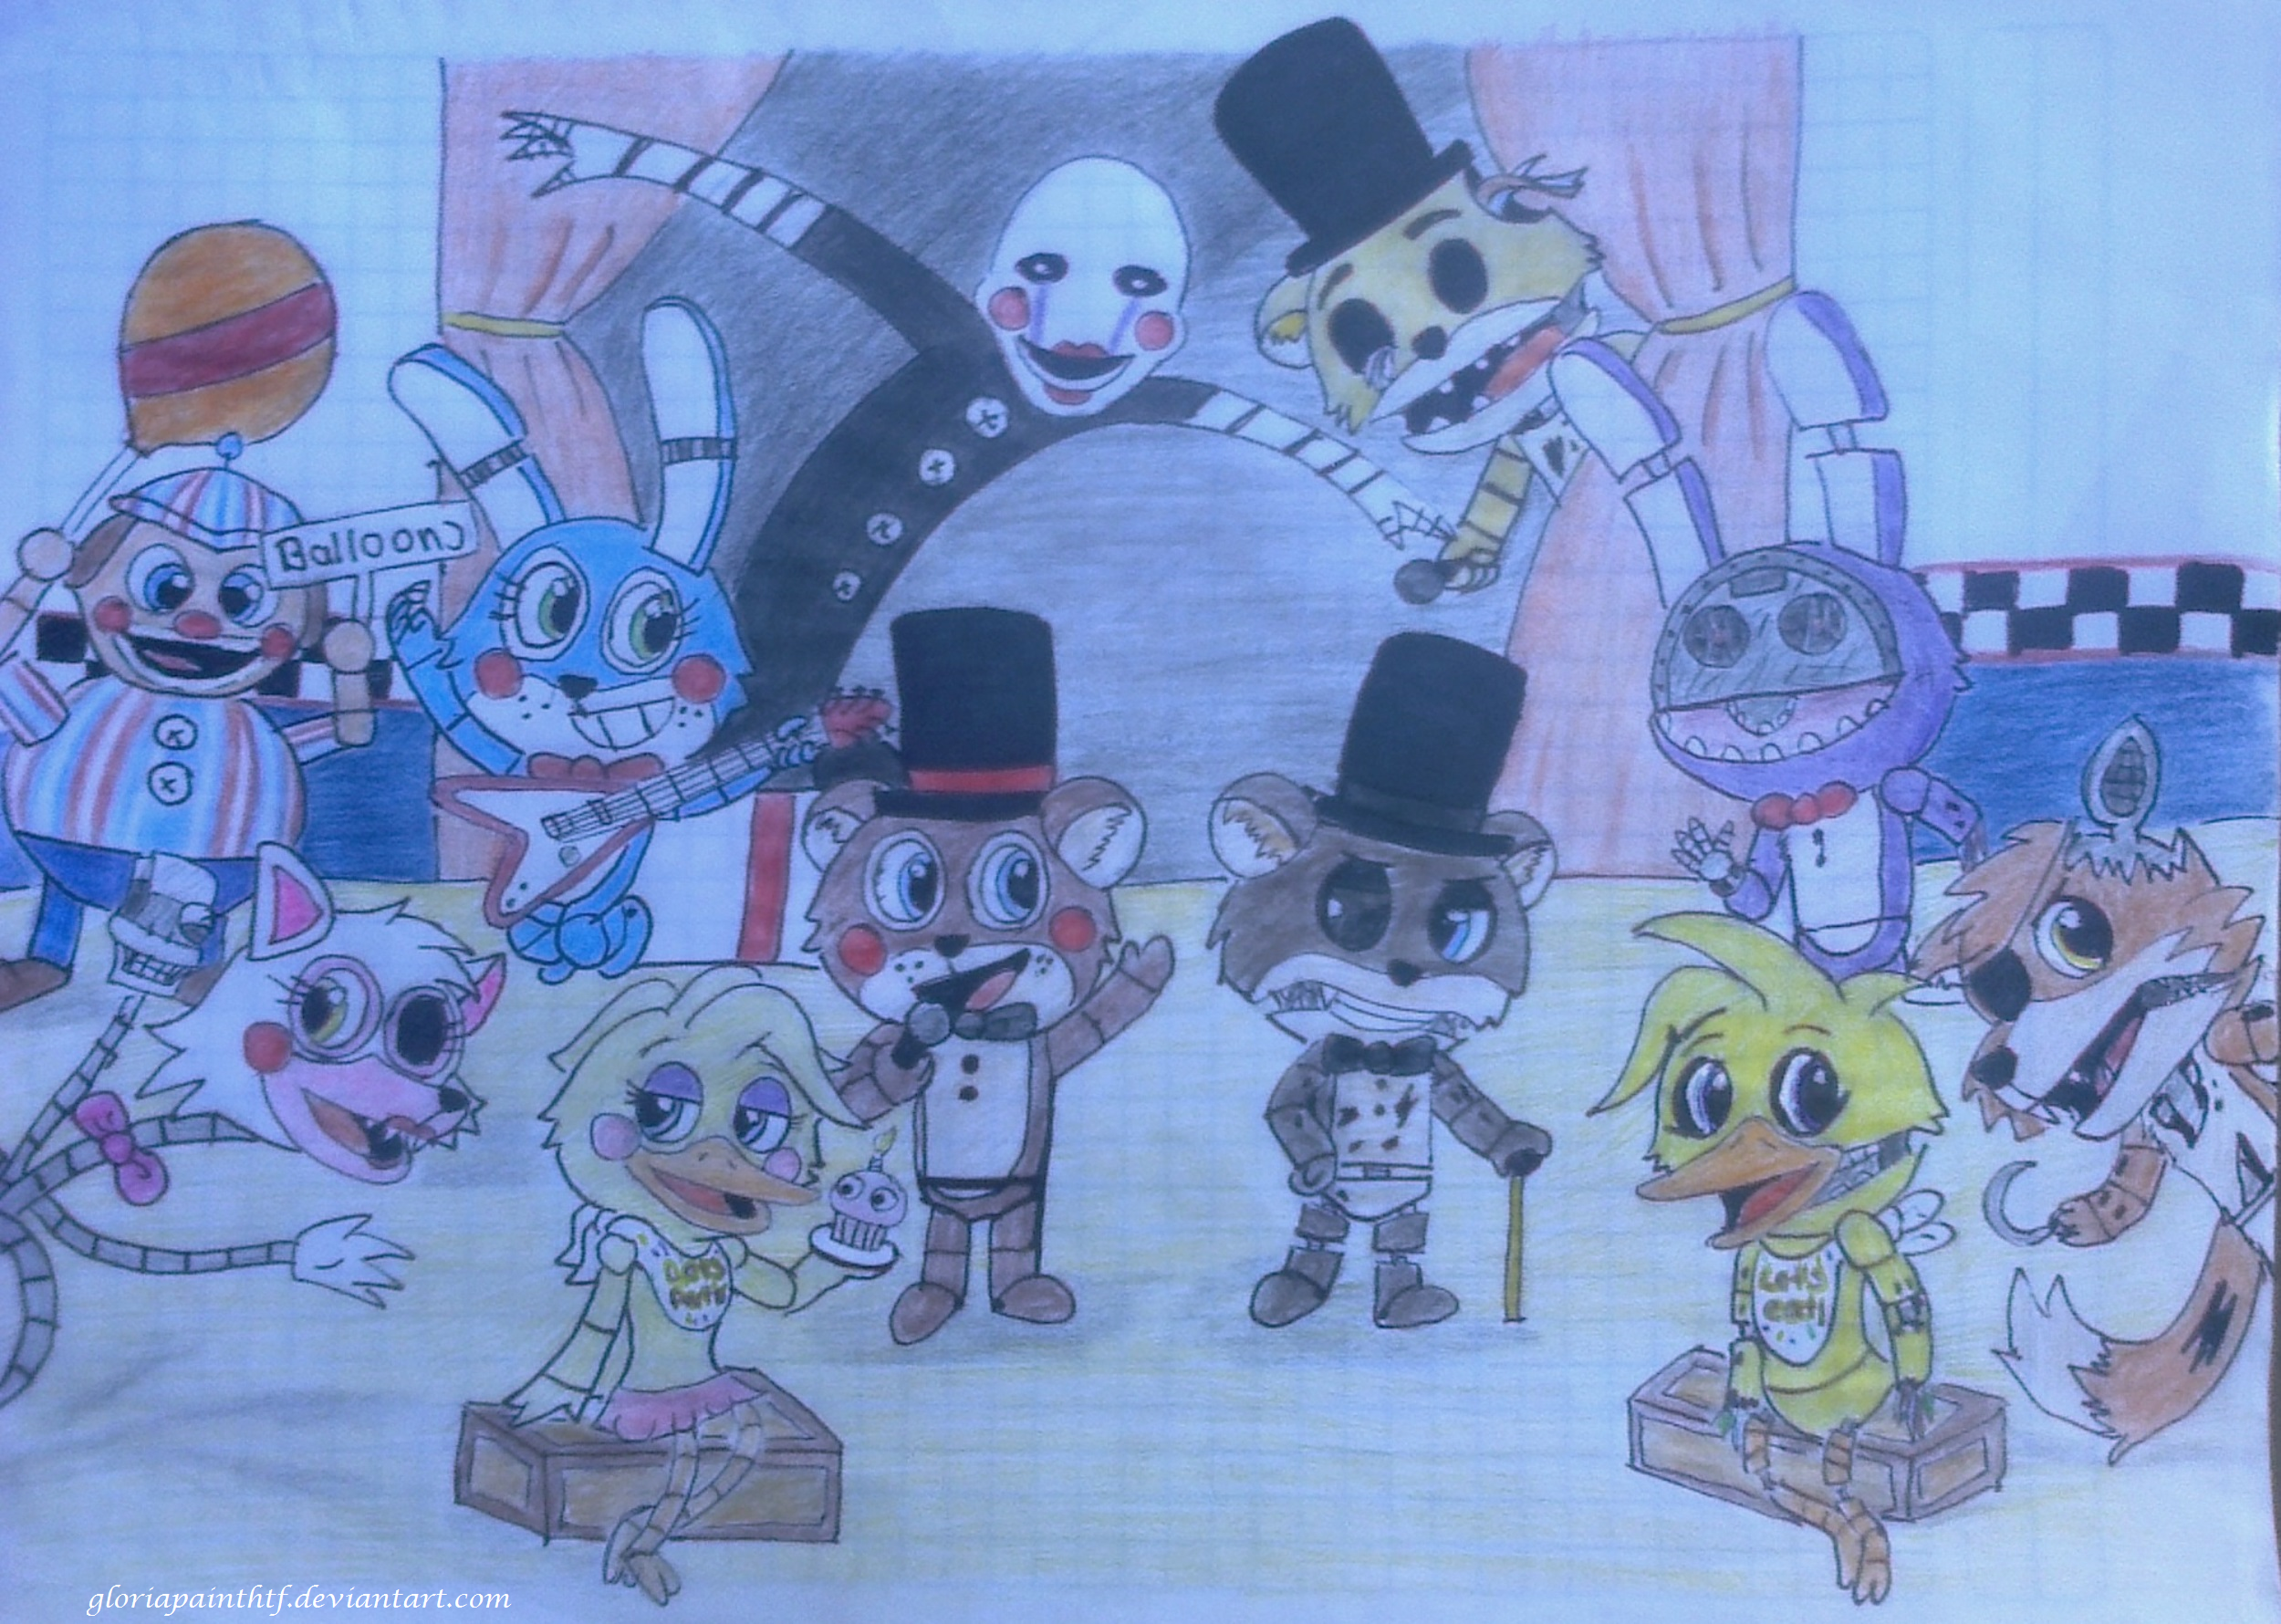 Five Nights At Freddys 2 Hand Drawing By Gloriapainthtf On